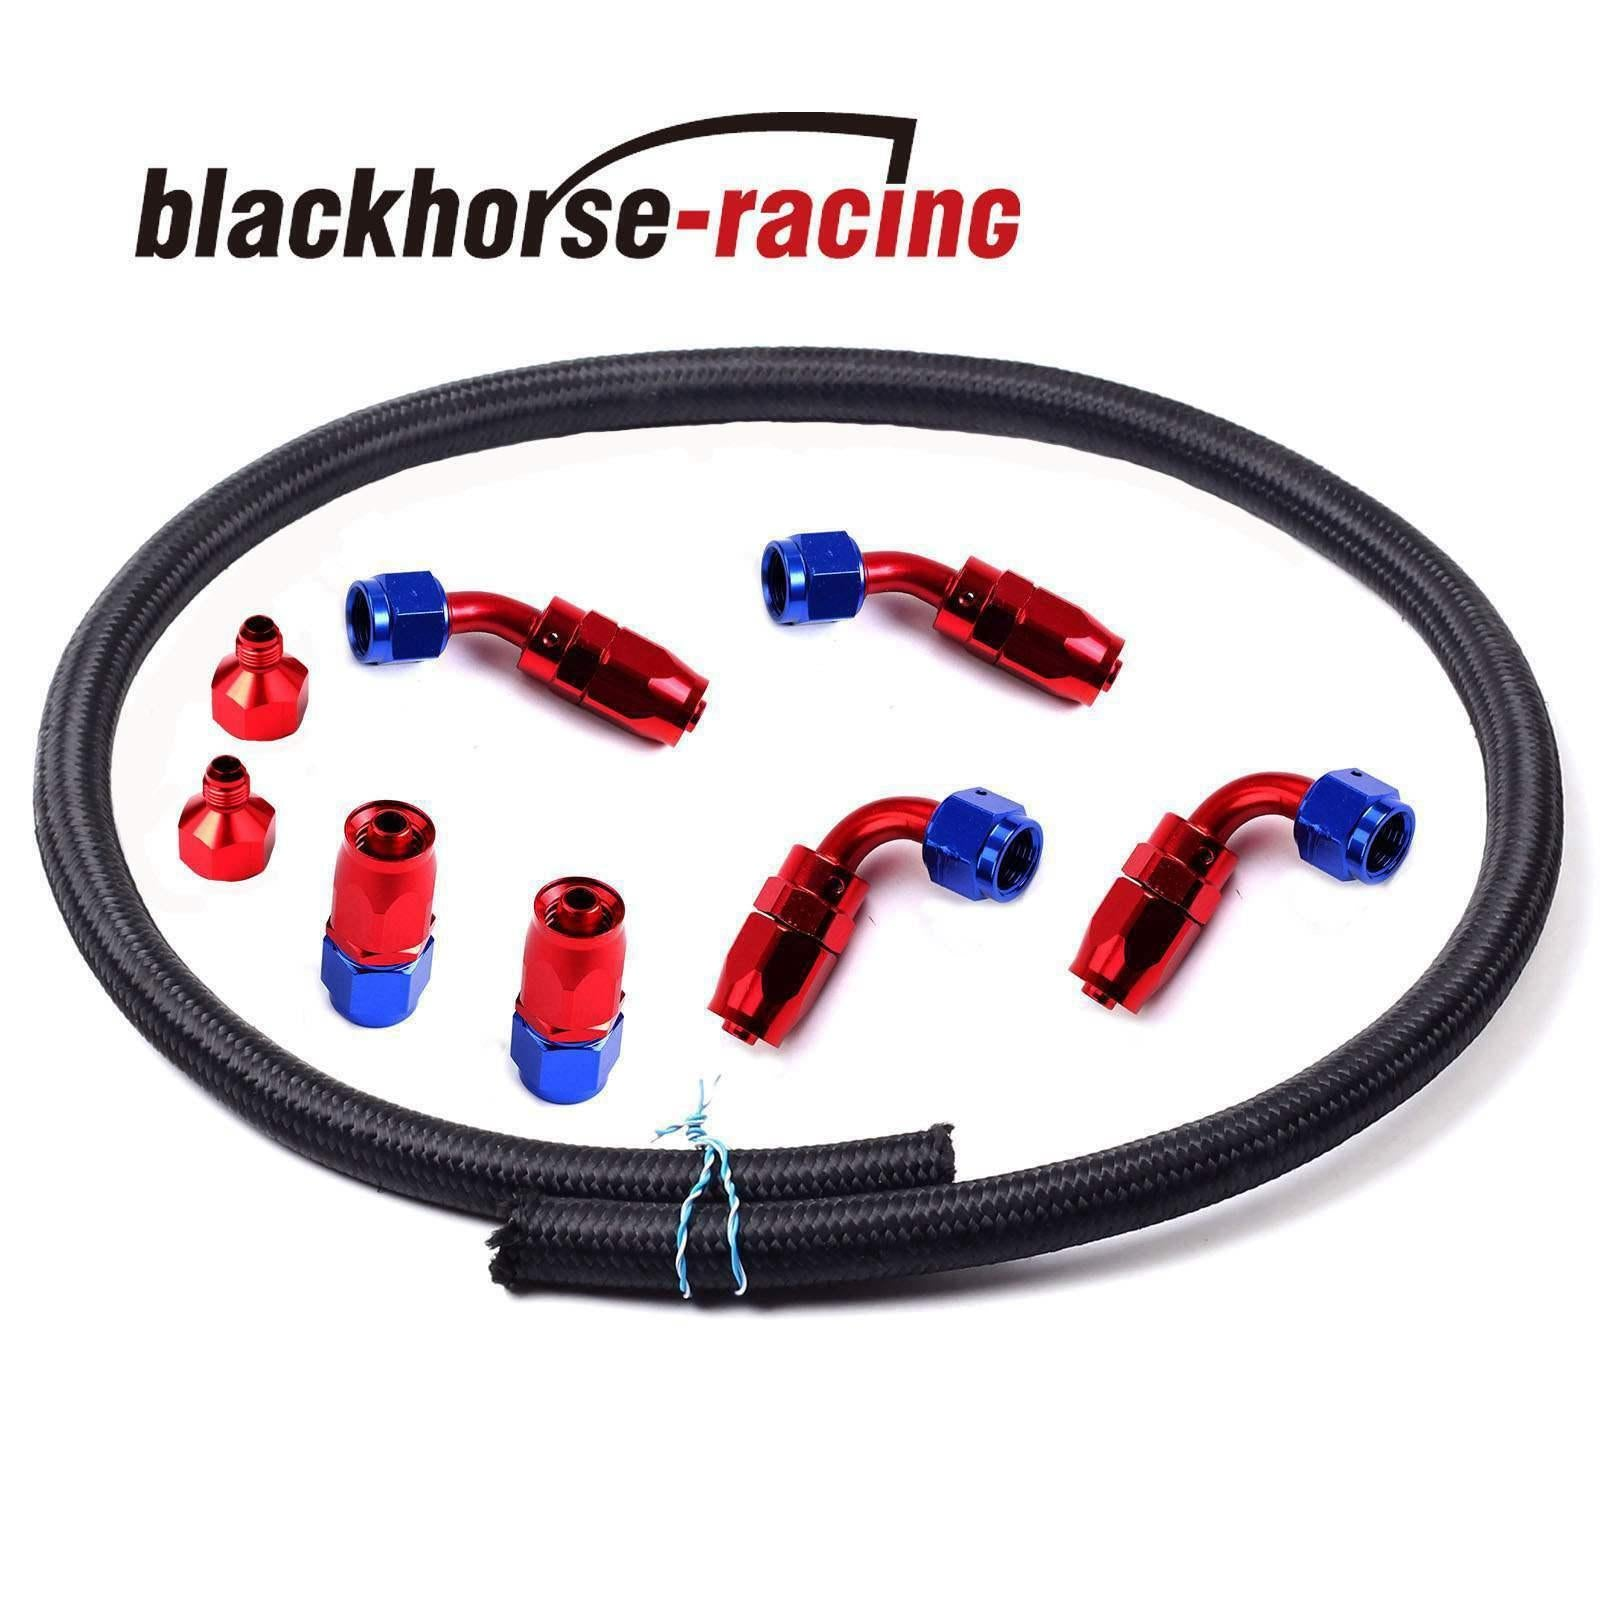 8Pcs Red-Blue Oil/Gas/Fuel Fitting Kits + AN6 12Feet Black Oil/Gas/Fuel  Hoses